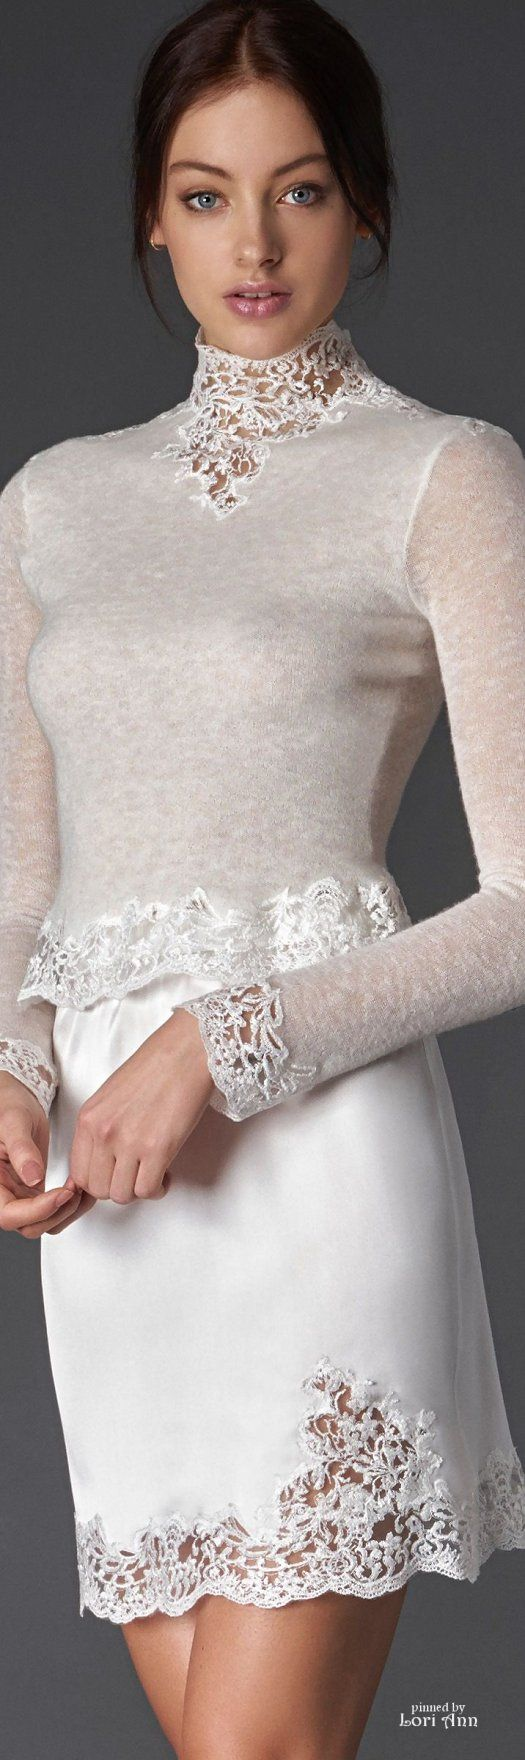 Ermanno Scervino Winter 2016